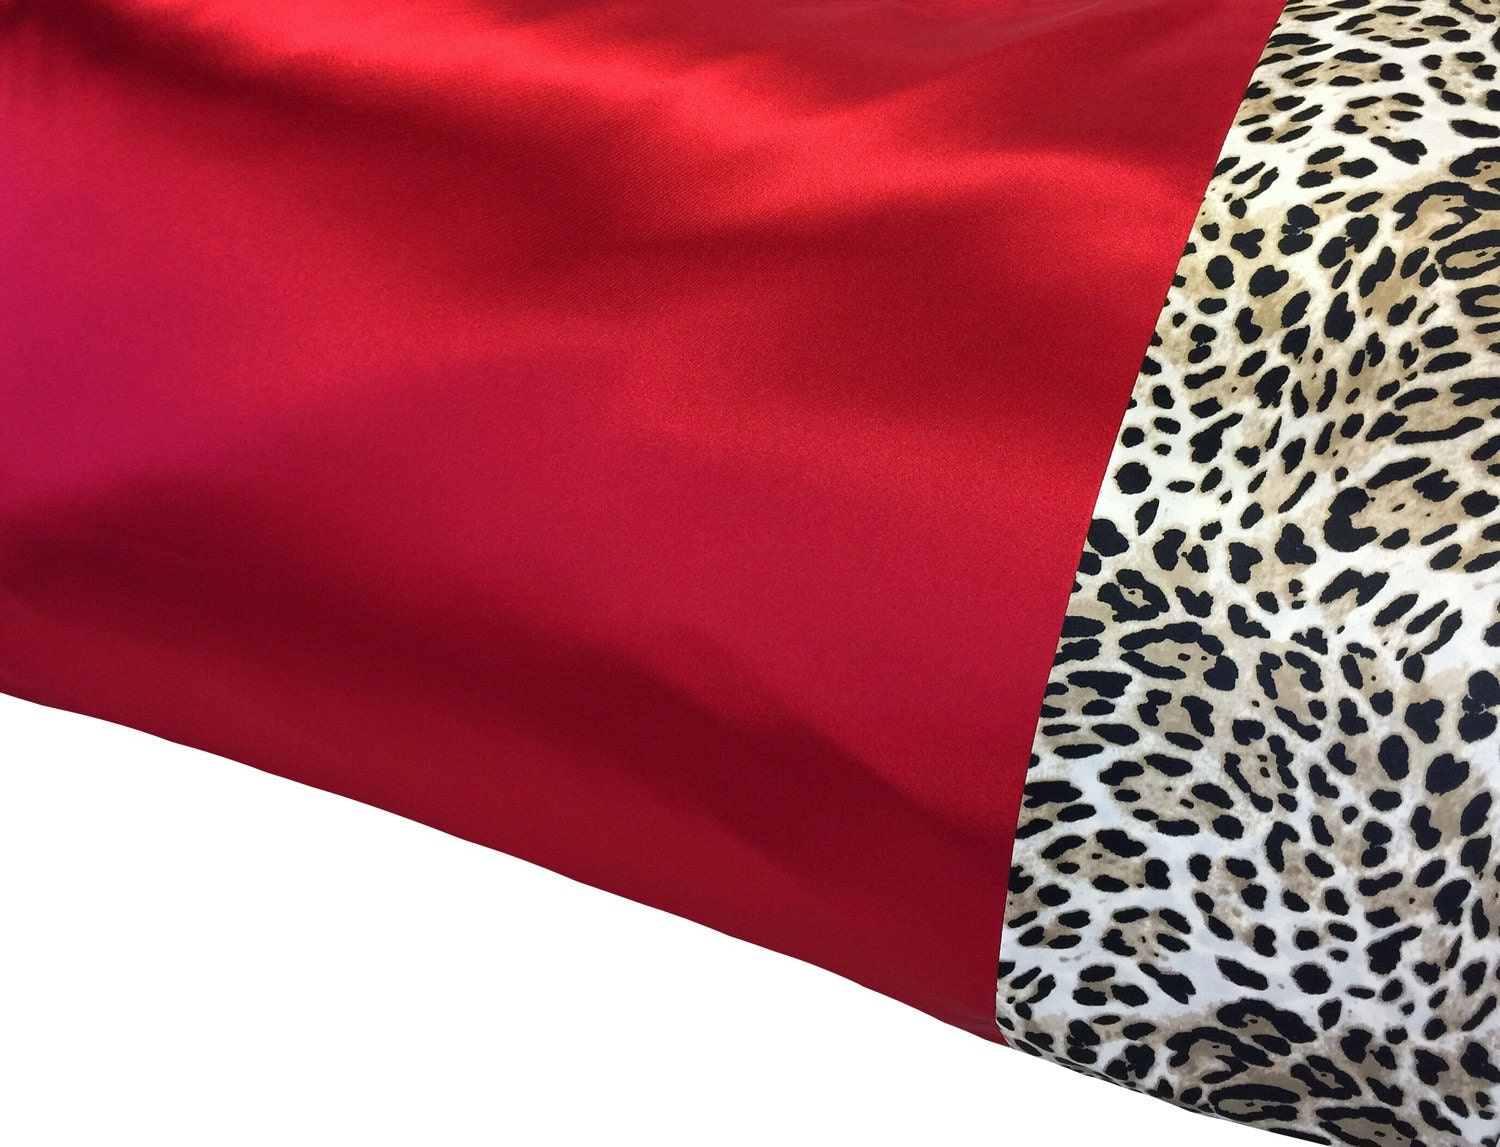 Leopard and red bedding - Crimson Red Satin Pillowcase Deep Red Leopard Satin Pillow Case Red And Leopard Bedding Snow Leopard Red Black Bedding Satin Swank